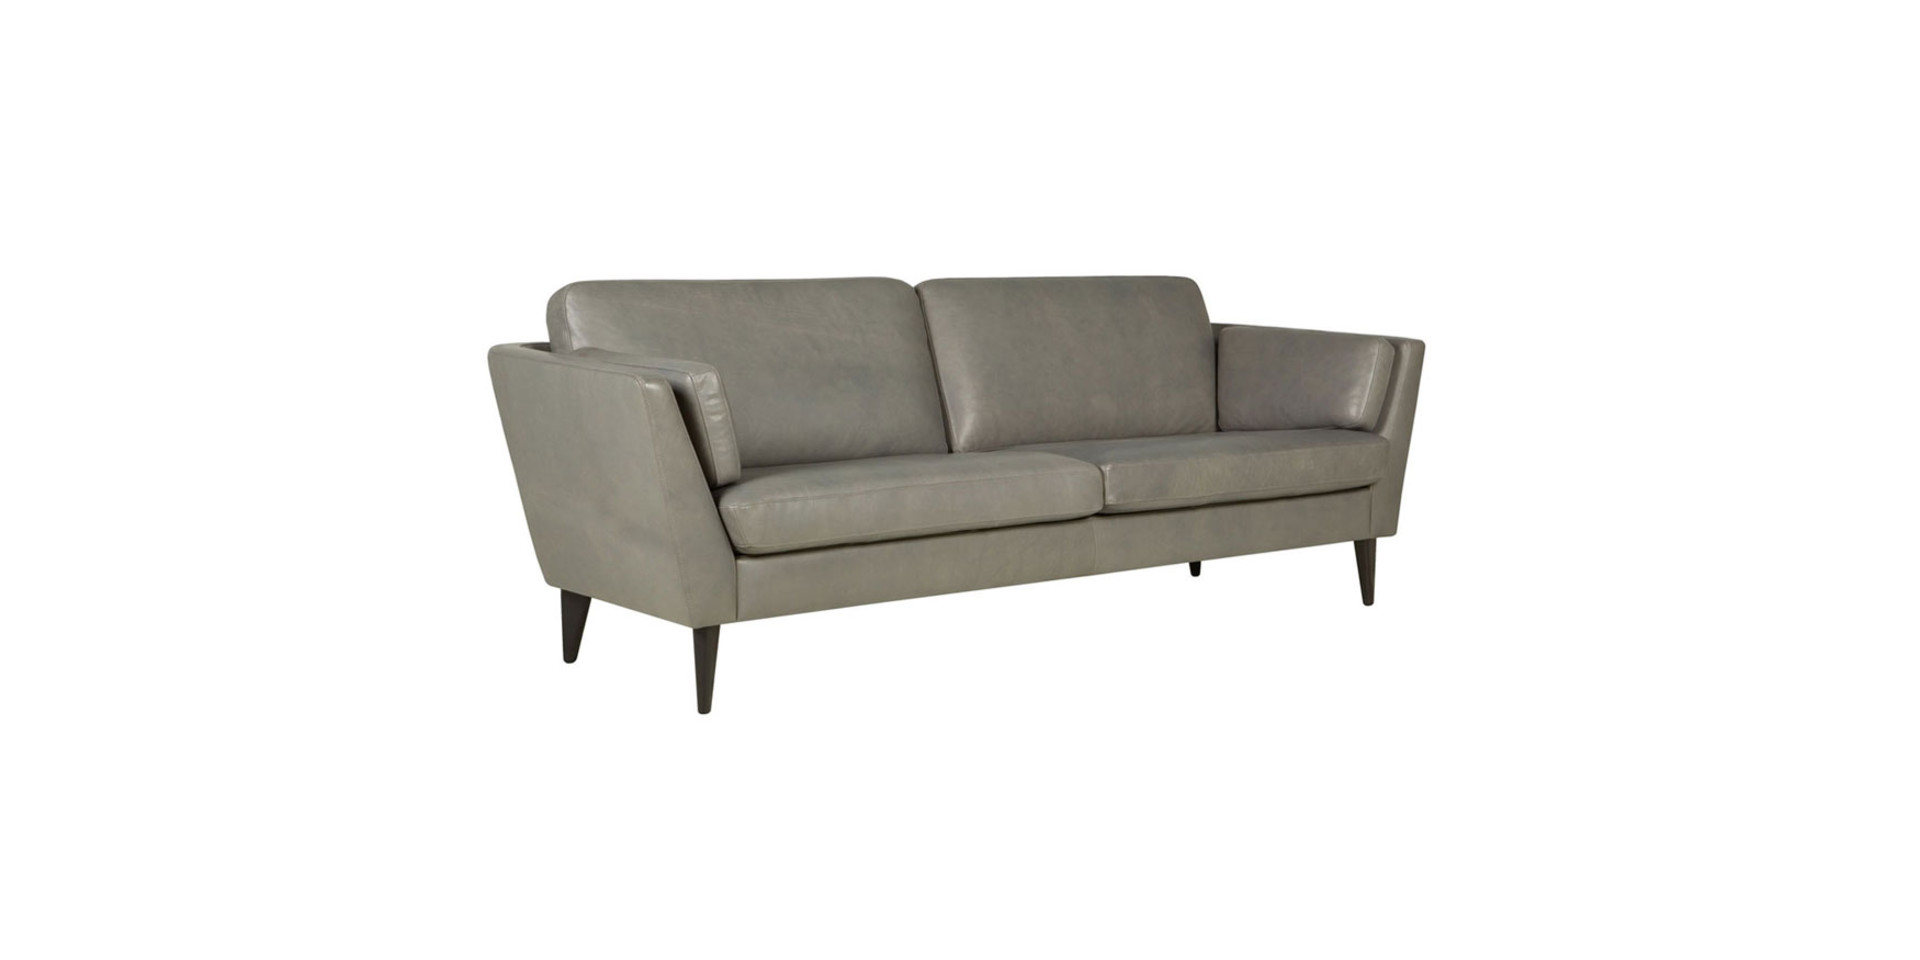 sits-mynta-canape-3seater_aniline_grey_2_0